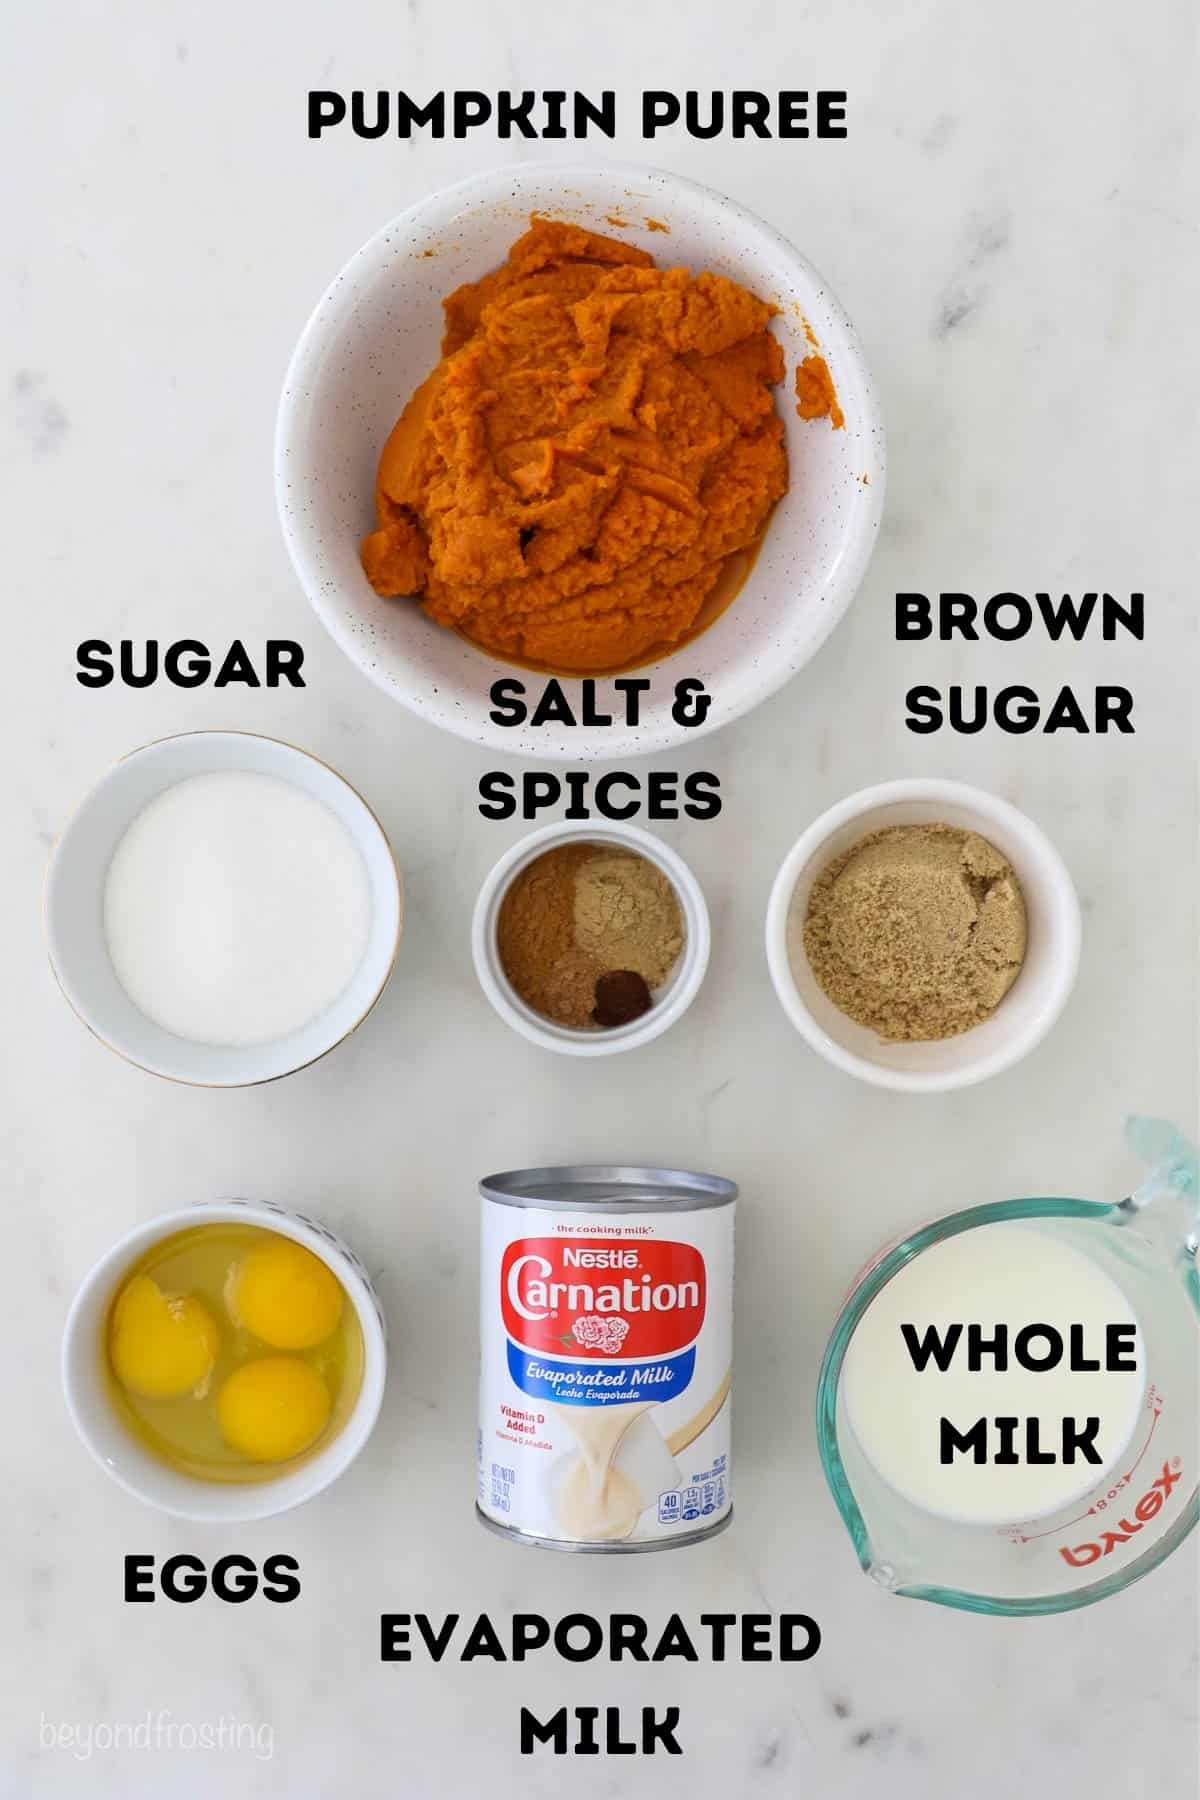 All of the ingredients to make this pumpkin pie, except for the crust.